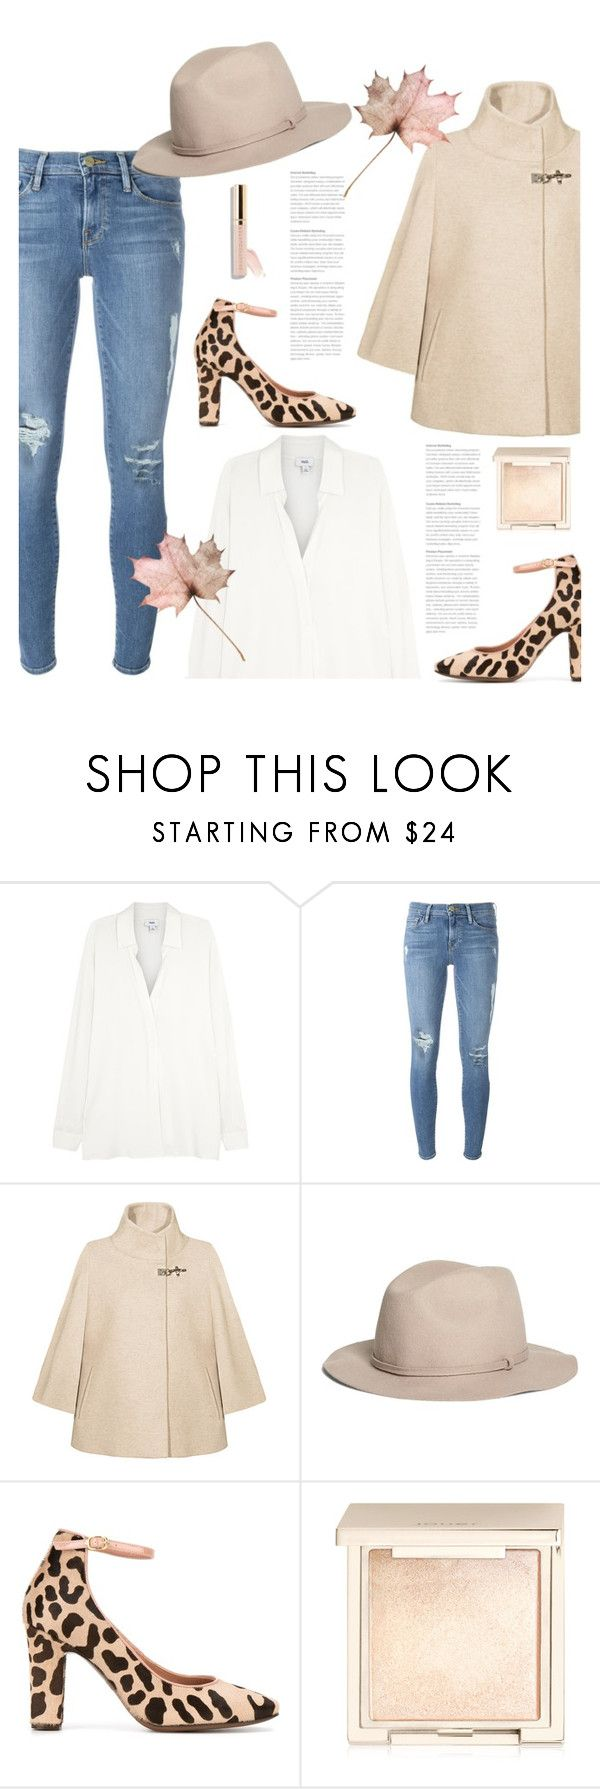 """""""10.10.16"""" by bliznec ❤ liked on Polyvore featuring Vince, Frame Denim, FAY, Brooks Brothers, L'Autre Chose, Jouer, Beautycounter and Fall"""